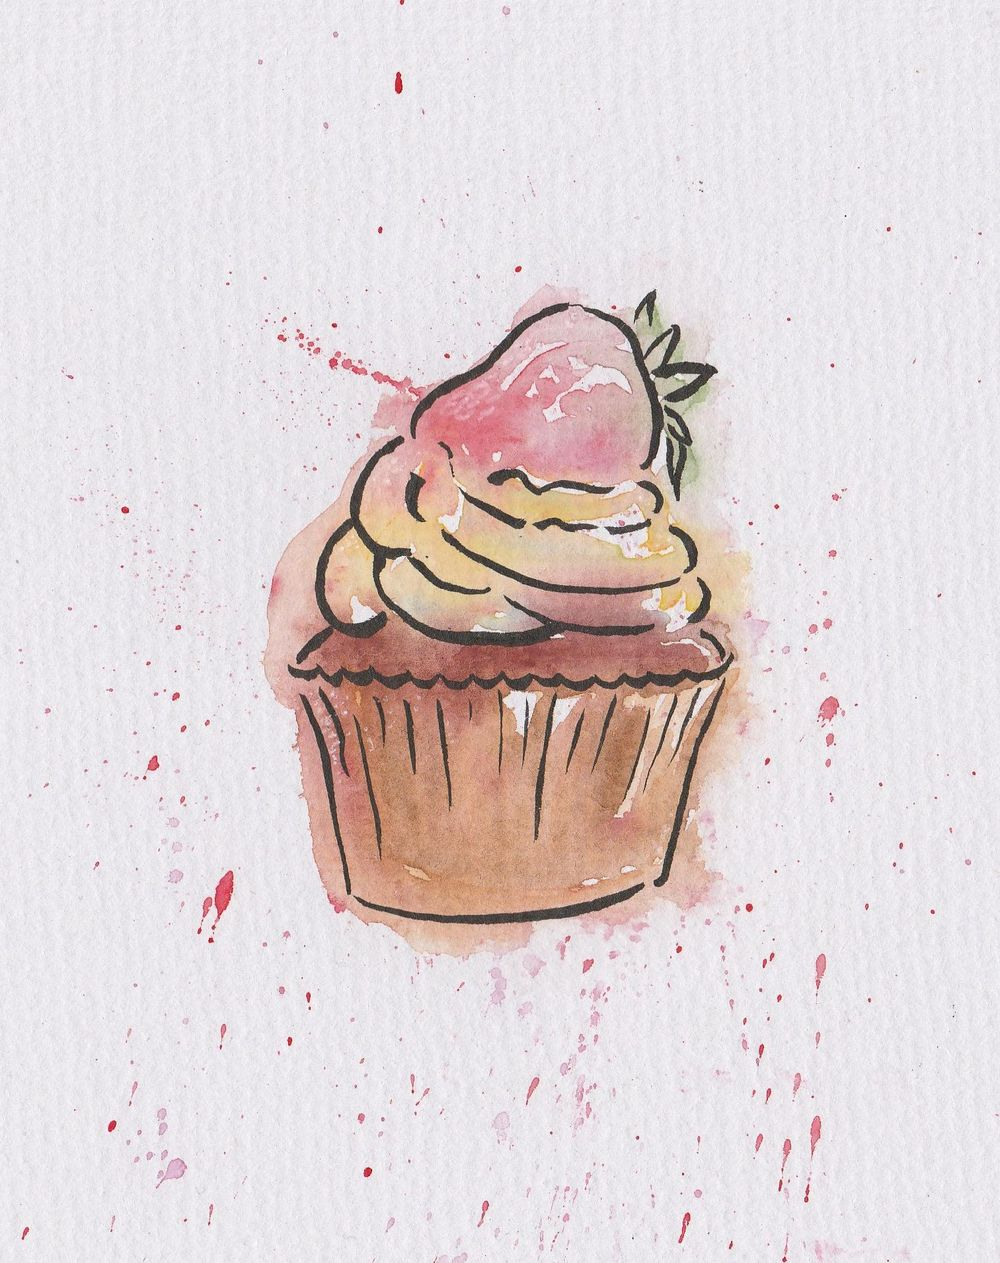 Watercolour sweets - image 3 - student project